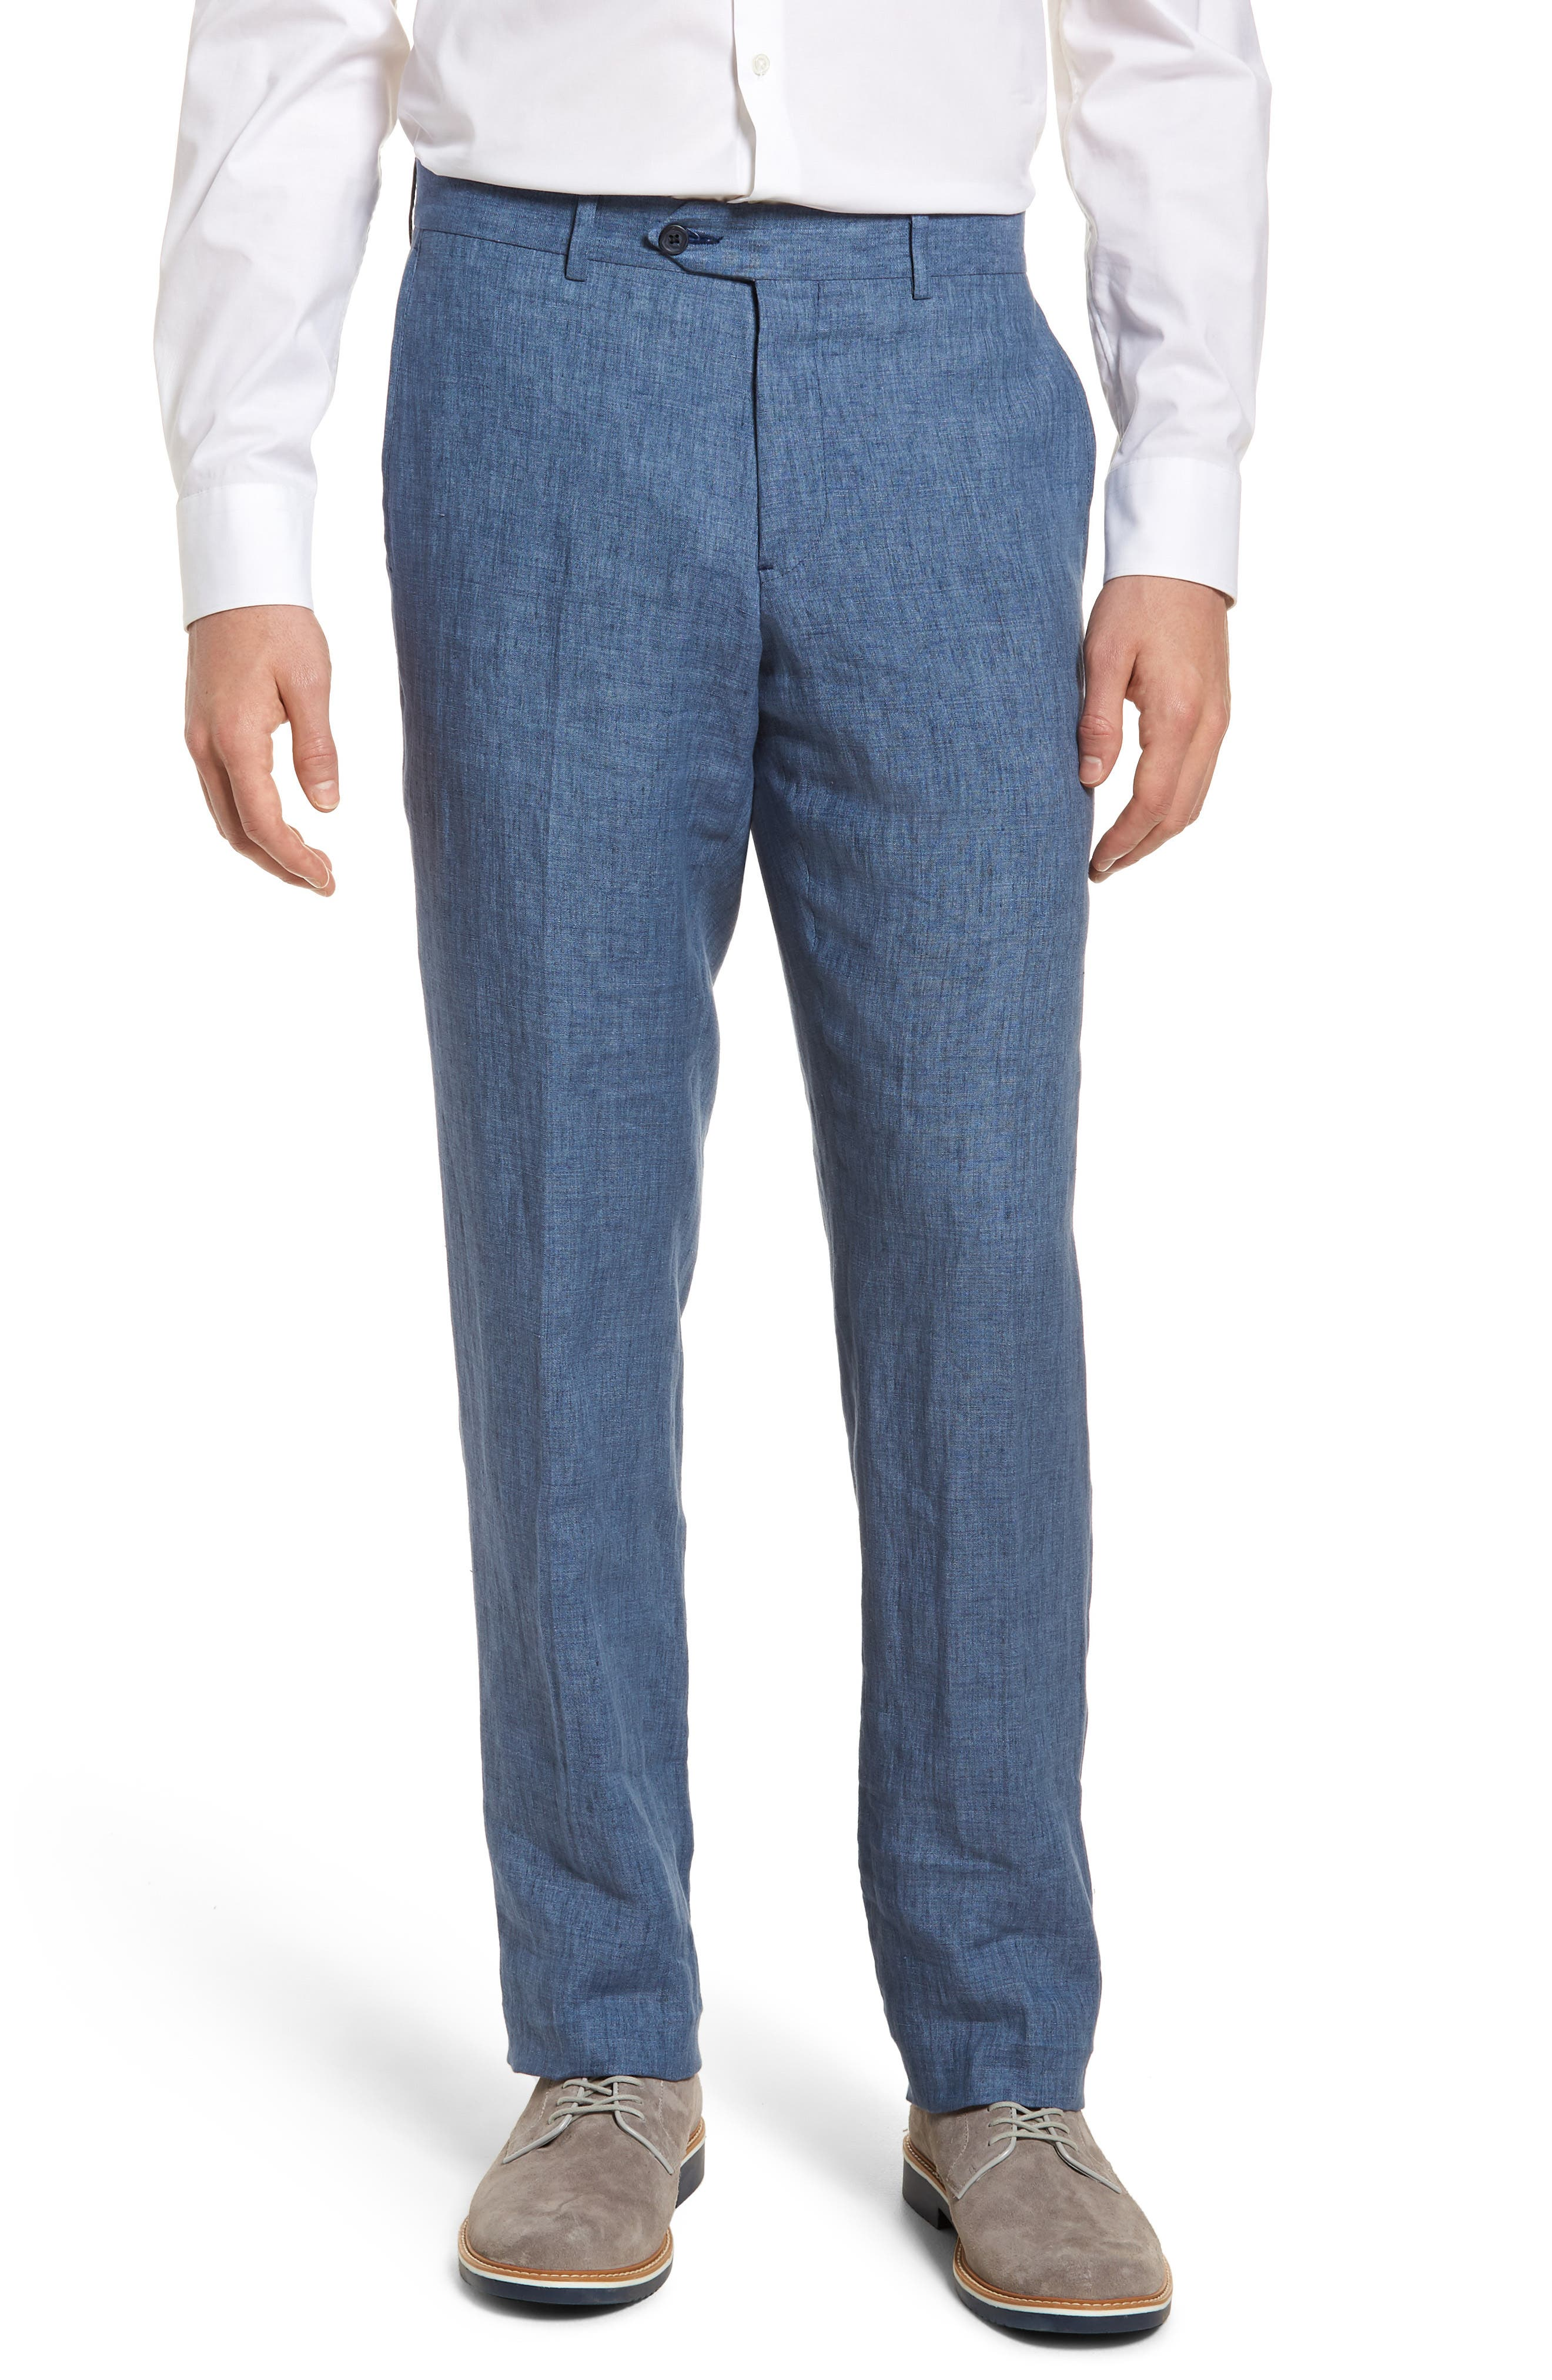 Flat Front Solid Linen Trousers,                             Main thumbnail 1, color,                             Blue Denim